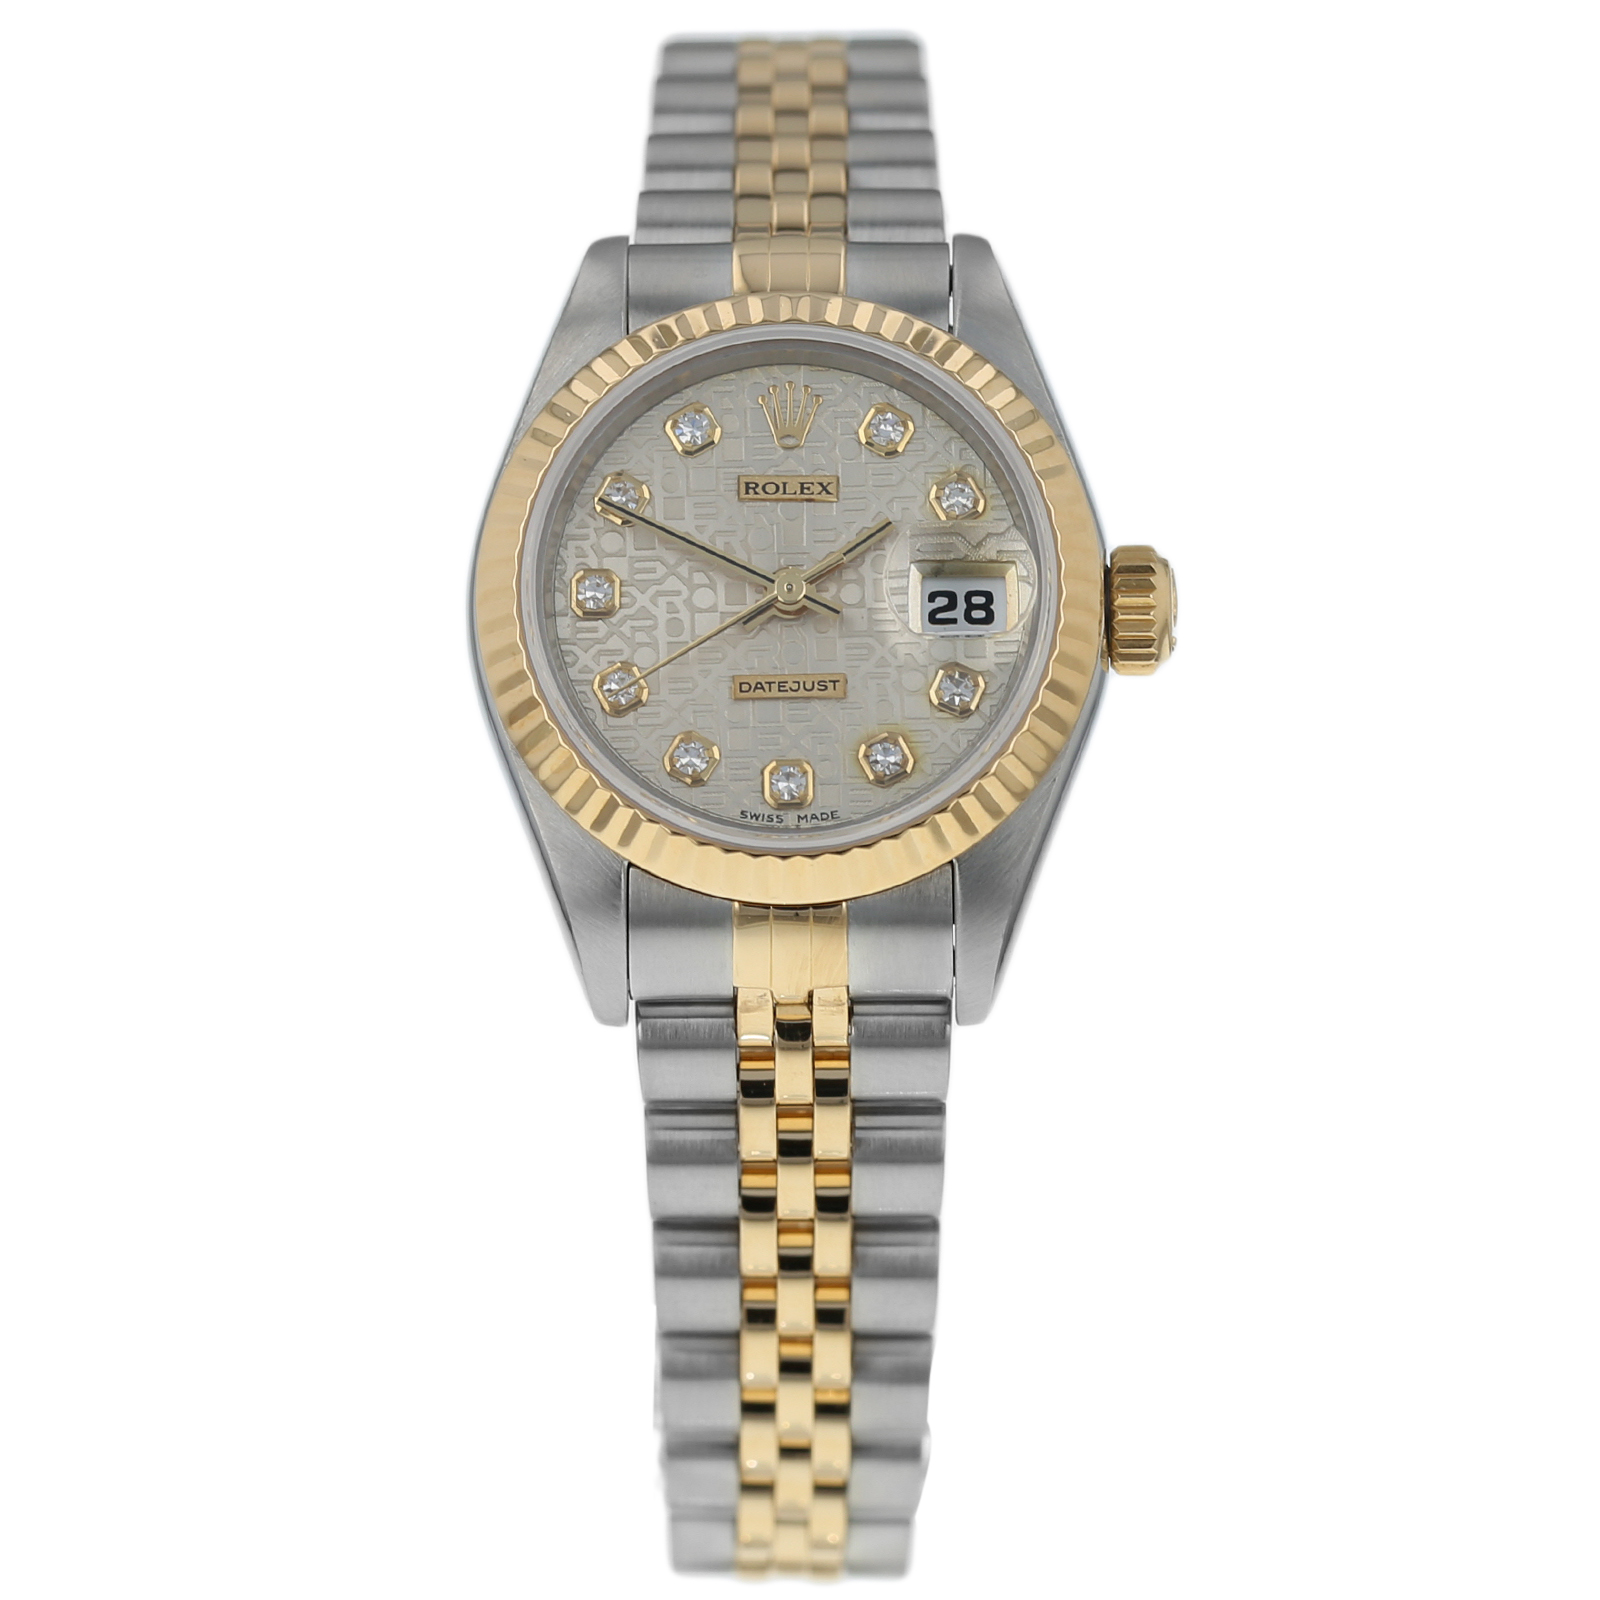 467c5ec83dd65 Pre-Owned Rolex Datejust Ladies Watch 69173